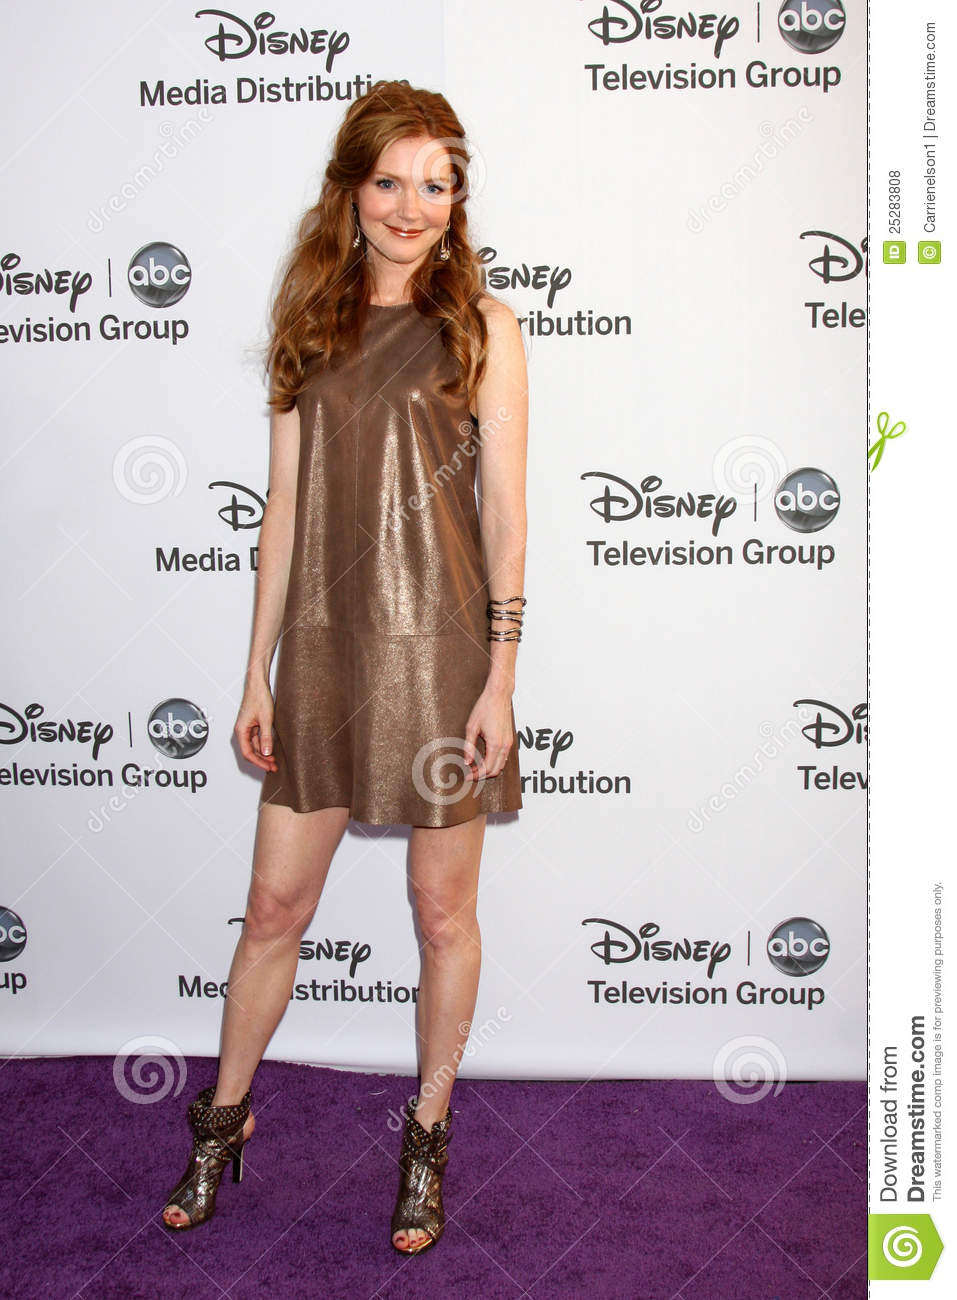 HQ Darby Stanchfield Wallpapers | File 146.31Kb